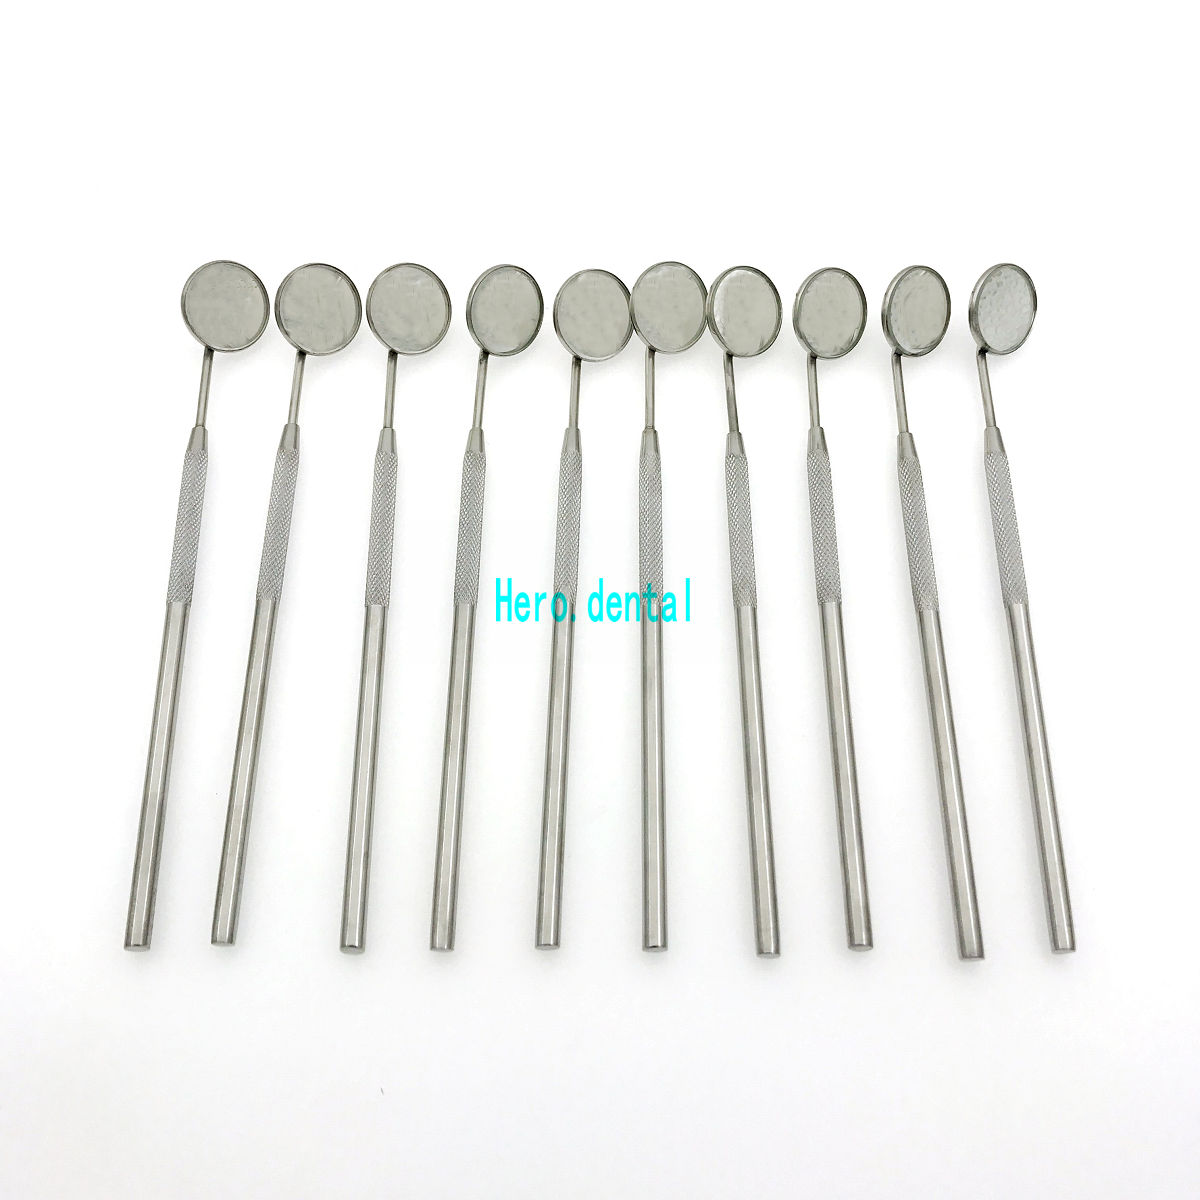 10pcs Dental Mirrors Stainless Steel Surgical Instruments Dental Mirror With Handle